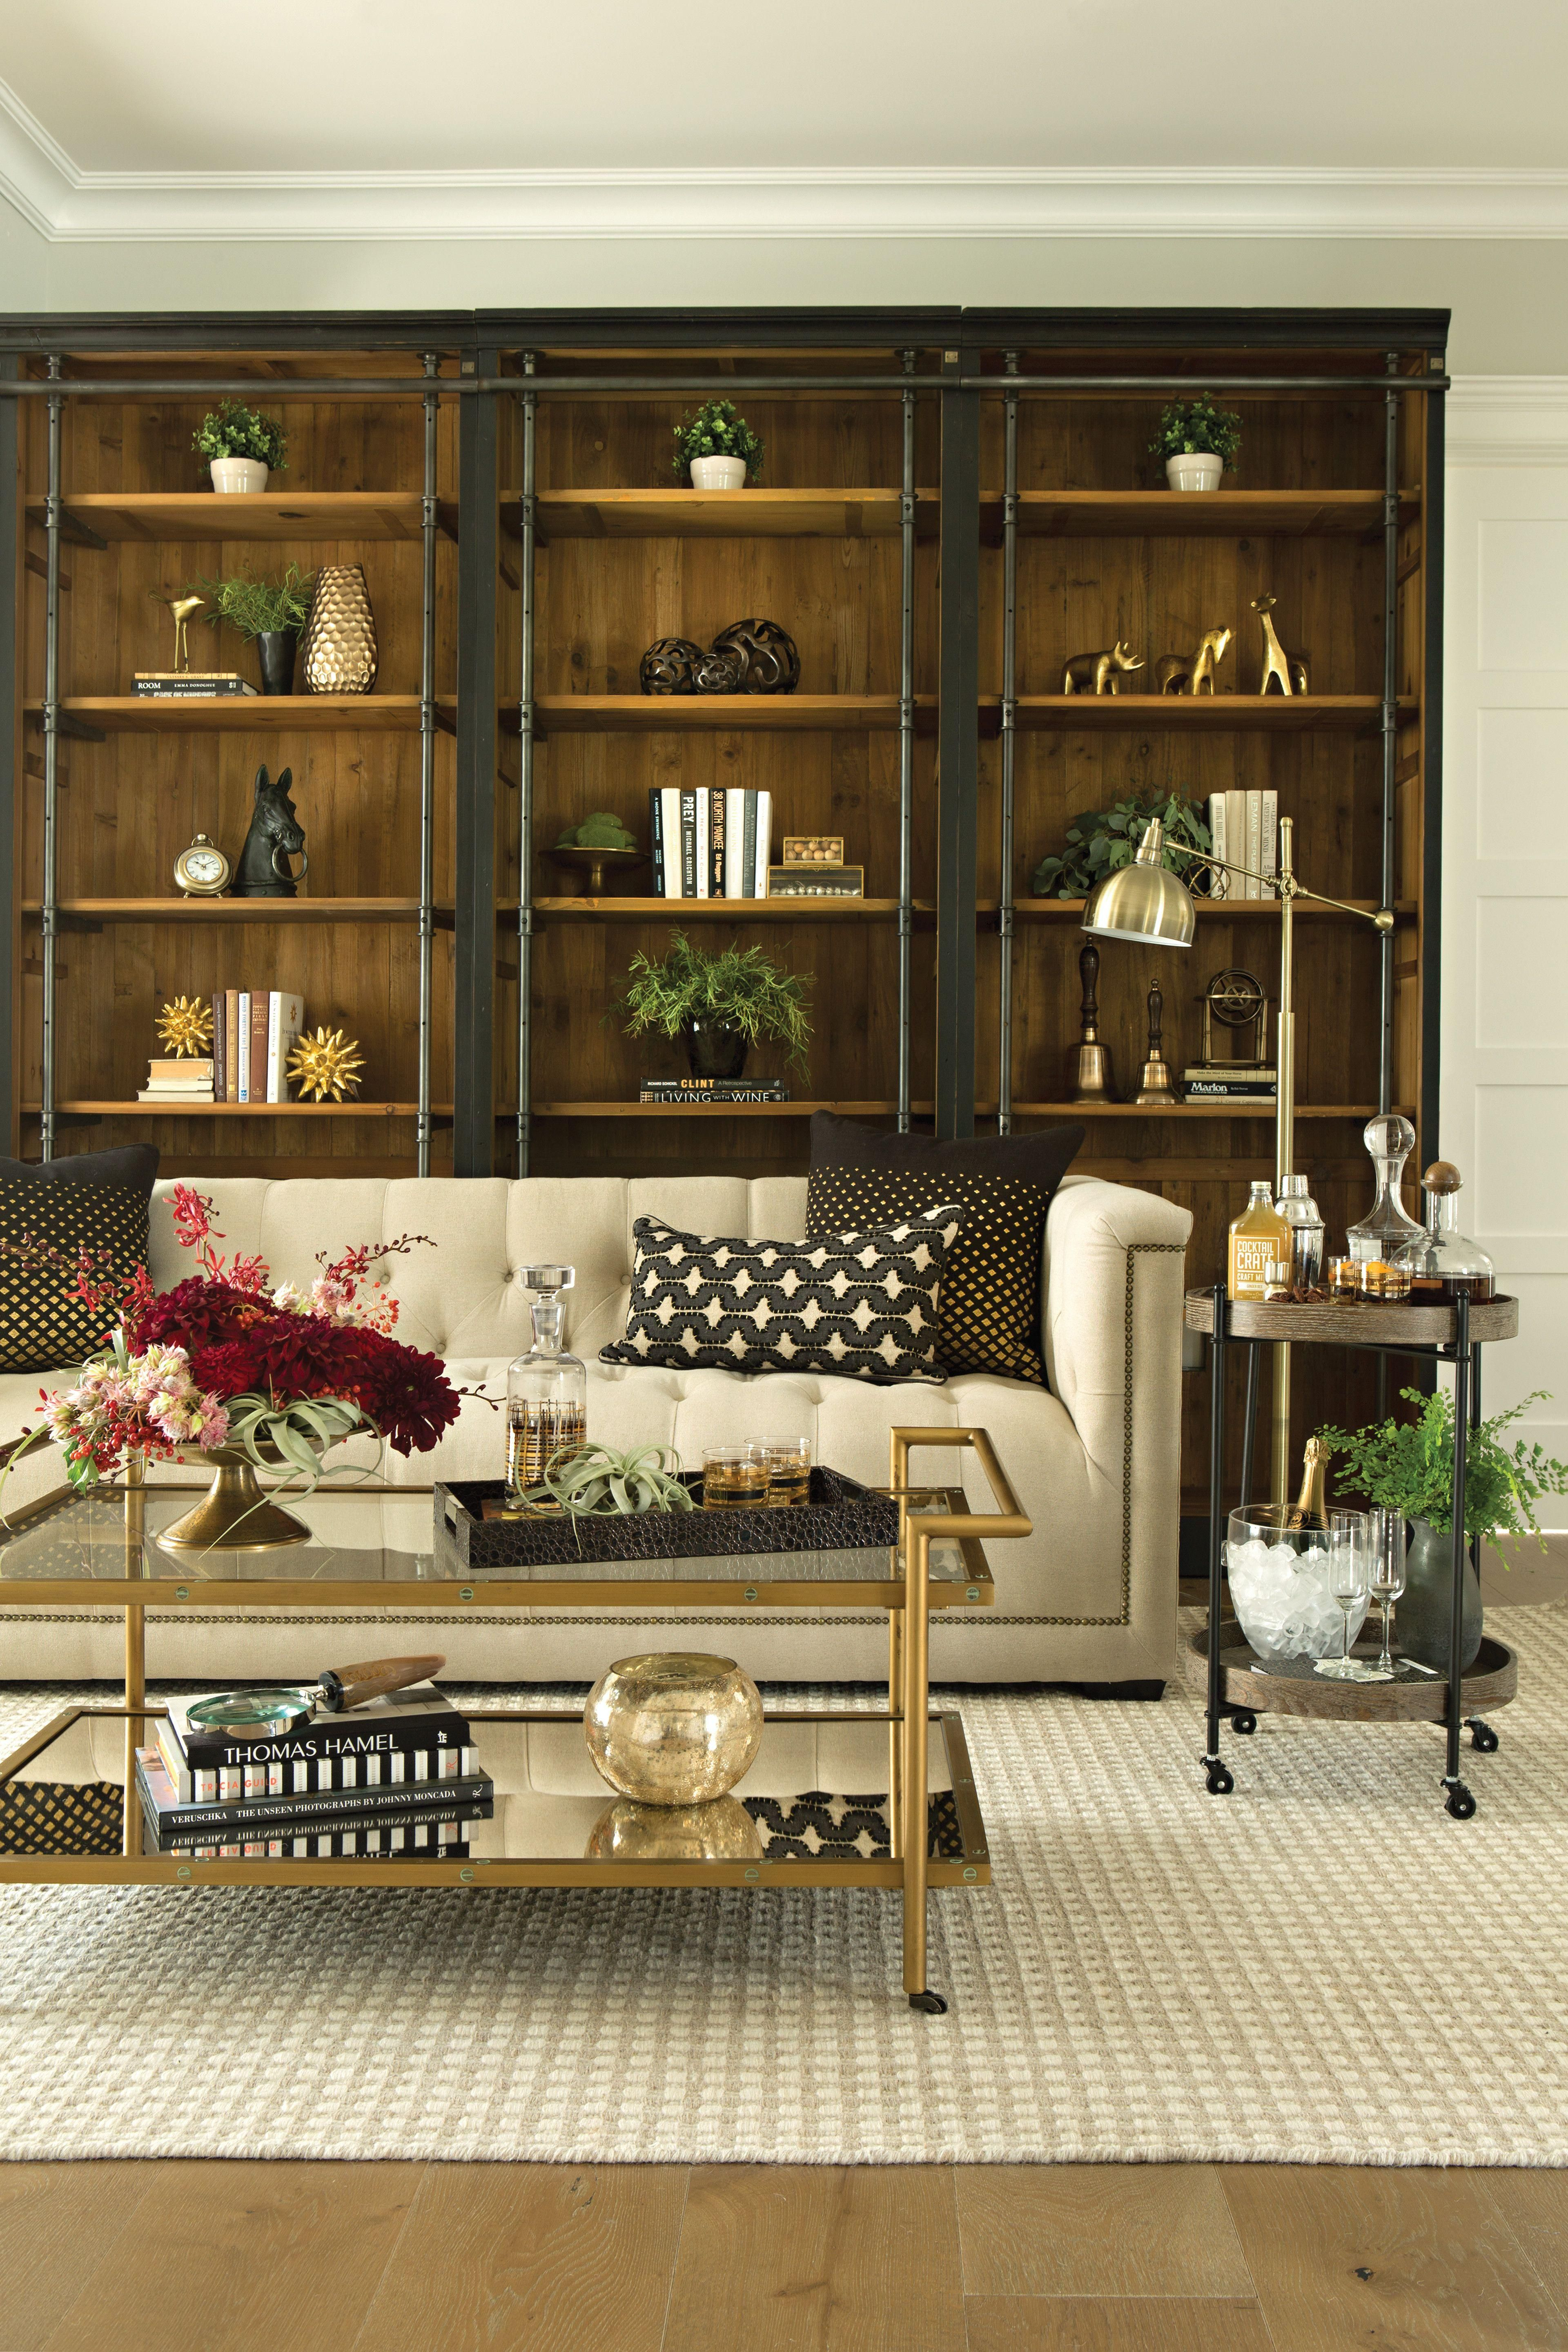 Keep Calm And Curate Home Decor Decor Living Spaces